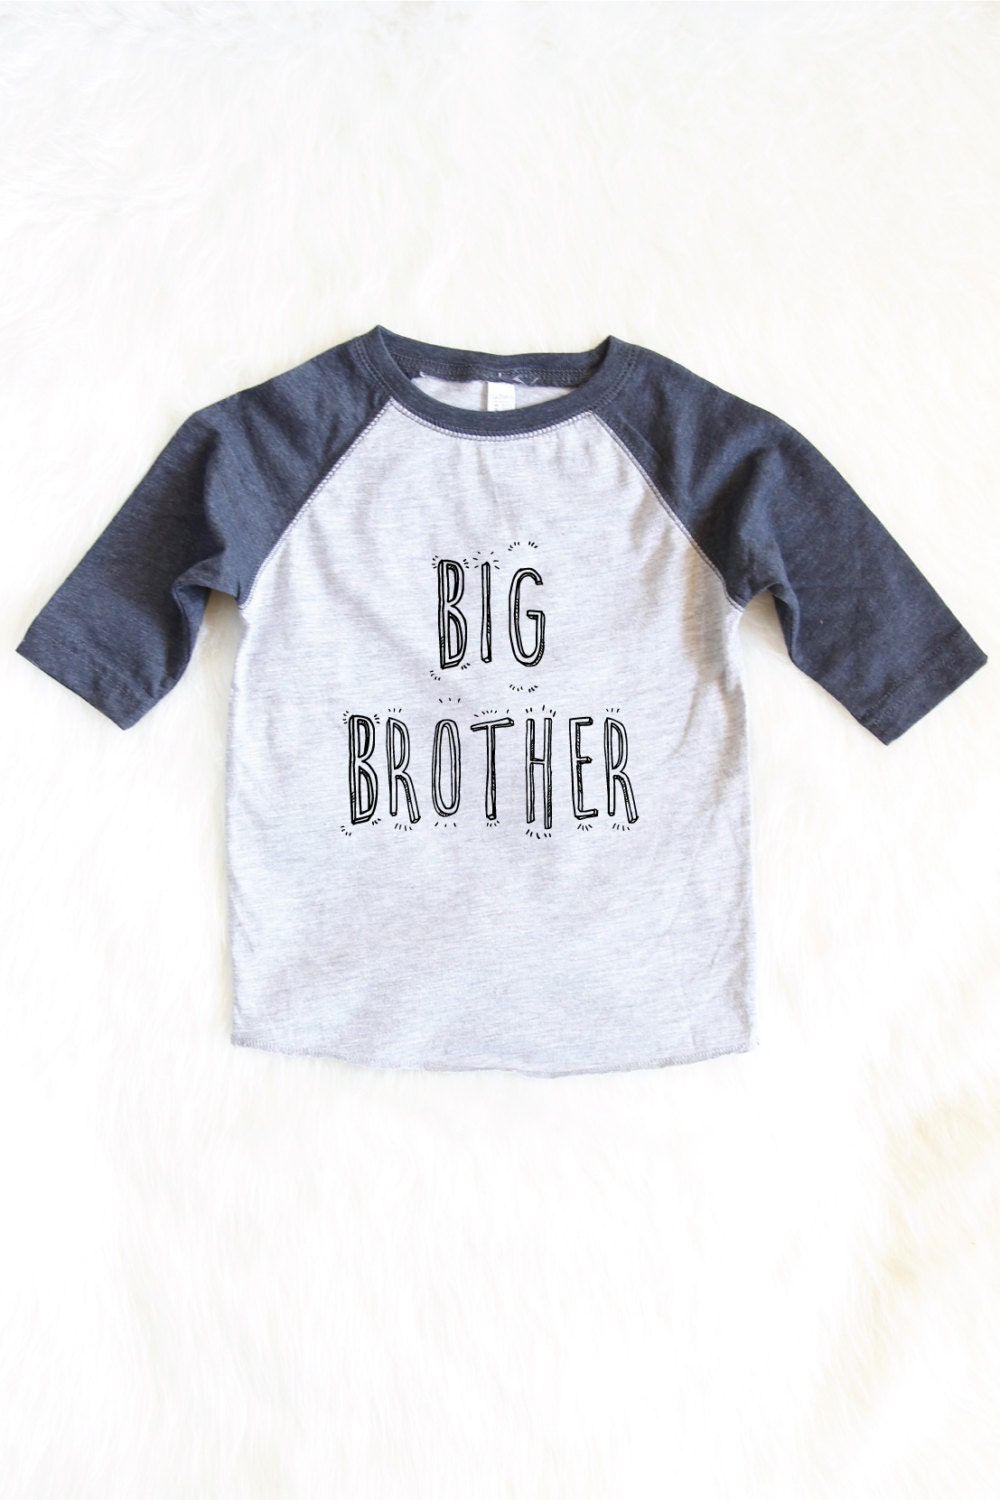 Big brother shirt baby announcement shirt kids graphic tee for Graphic t shirts for kids